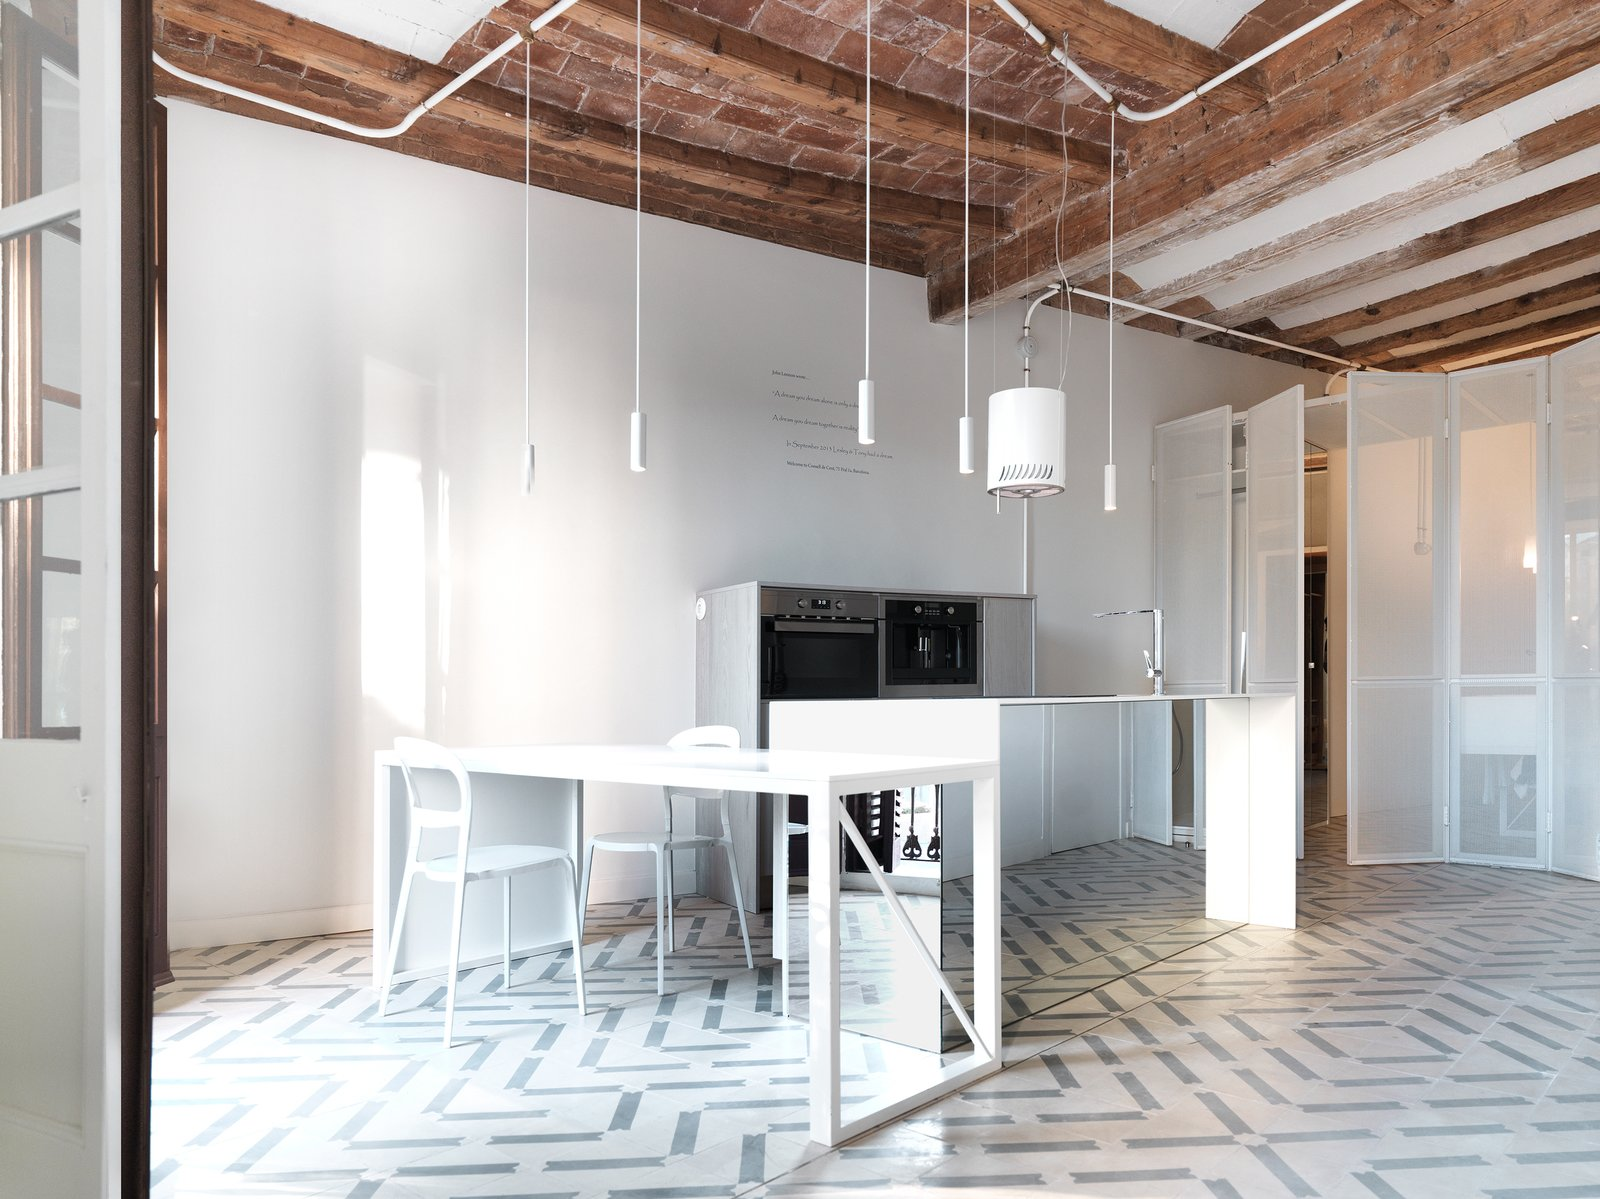 The kitchen is pivot of the house. All Lighting is custome made by the architects